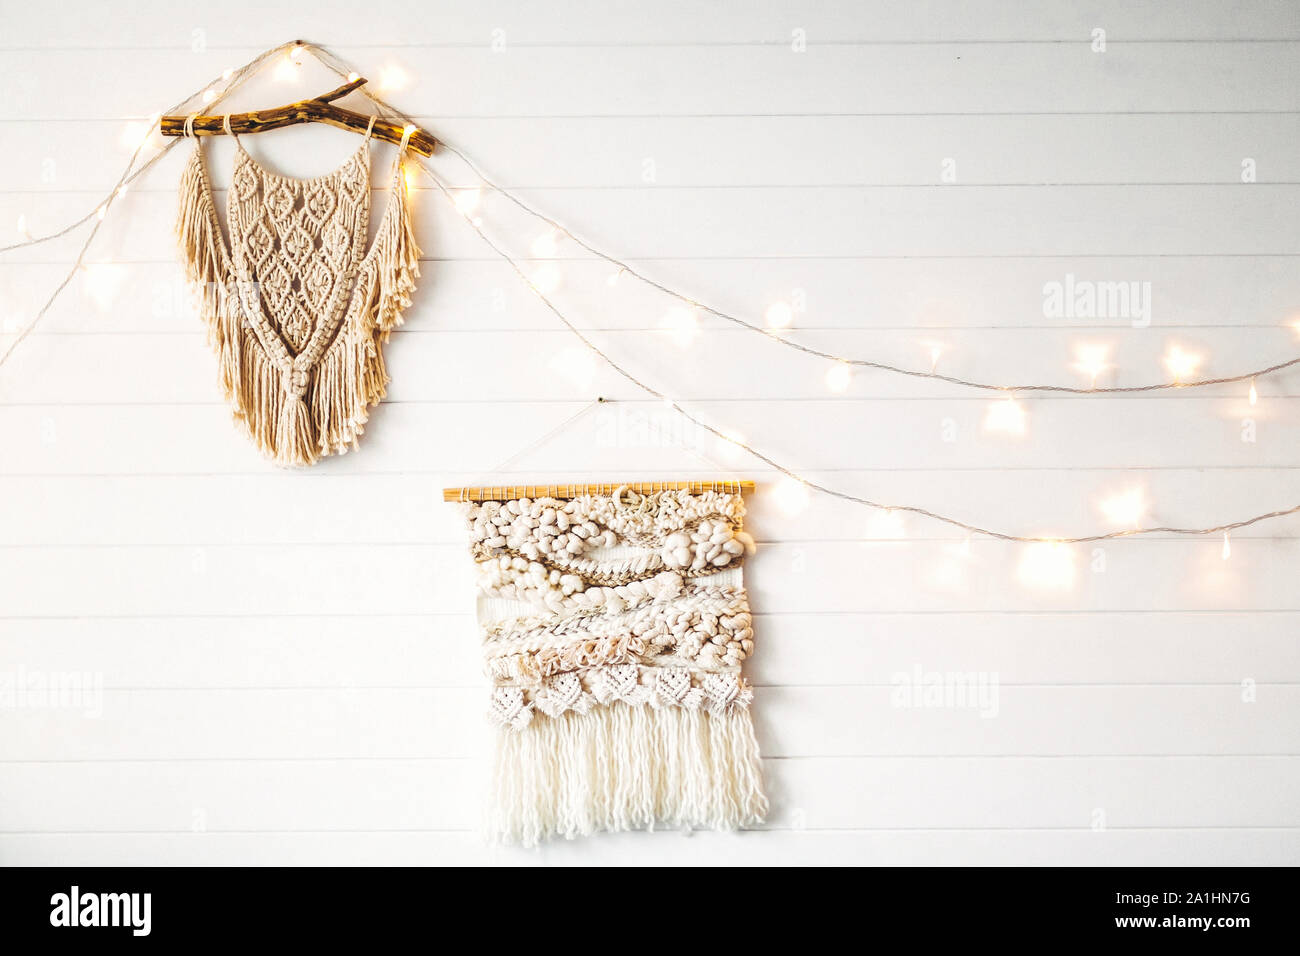 Macrame hanging on white wooden wall with lights. Stylish boho decor, modern wall hanging. Modern interior decor in scandinavian or rustic room. Stock Photo